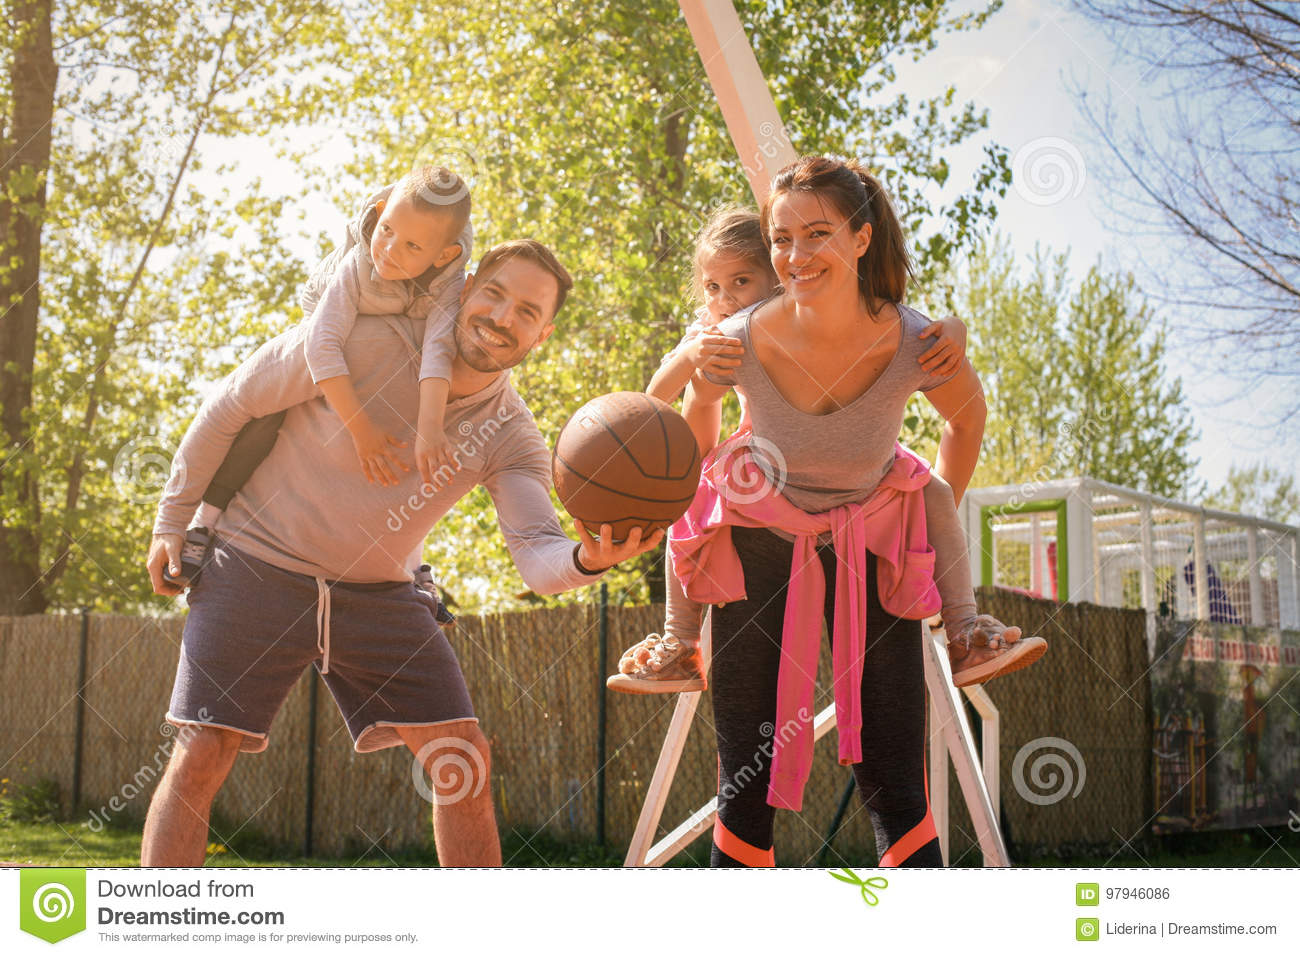 Parents playing with their children in the park with basket ball